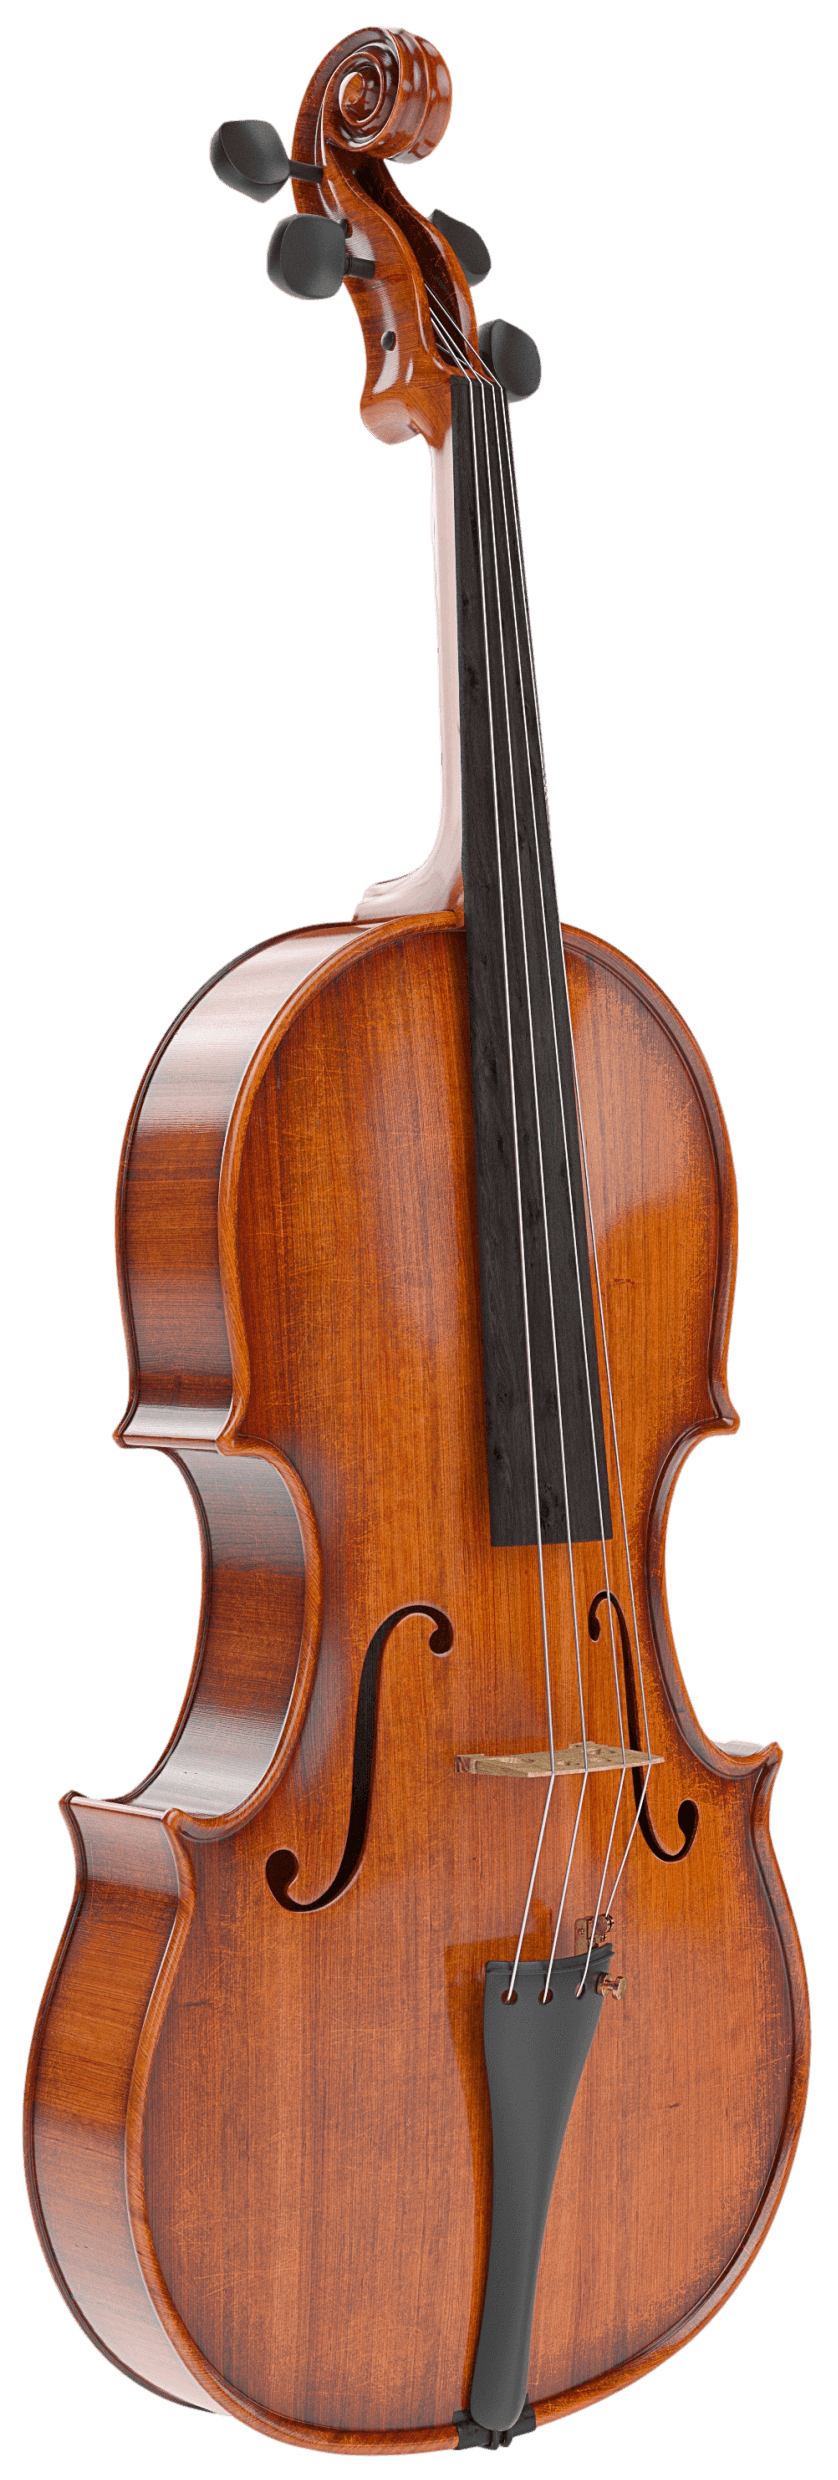 learn-how-to-play-violin-img7